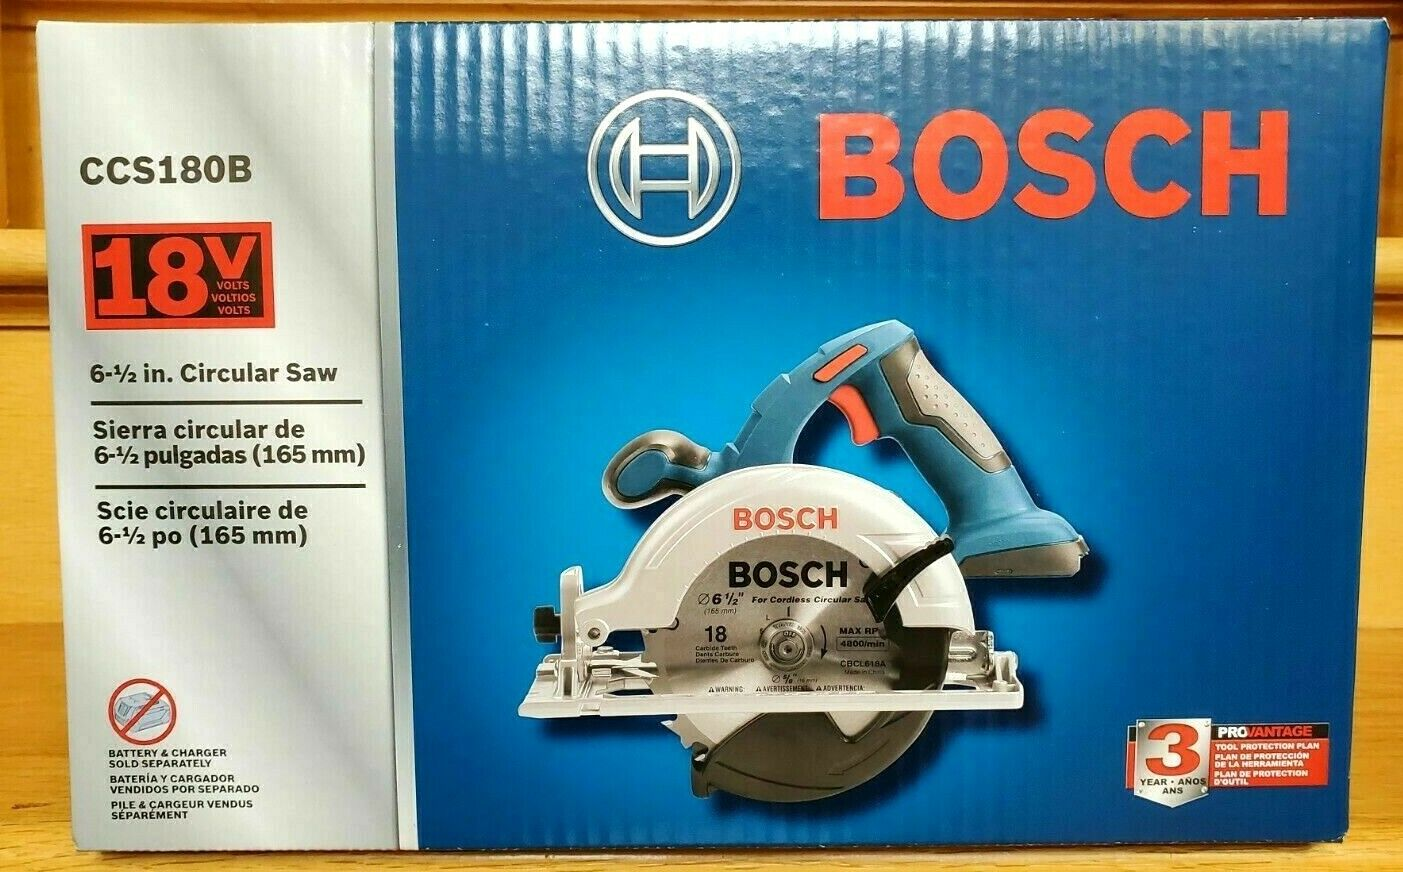 New BOSCH CCS180B 18V Cordless Lithium-Ion 6-1/2 in. Circula